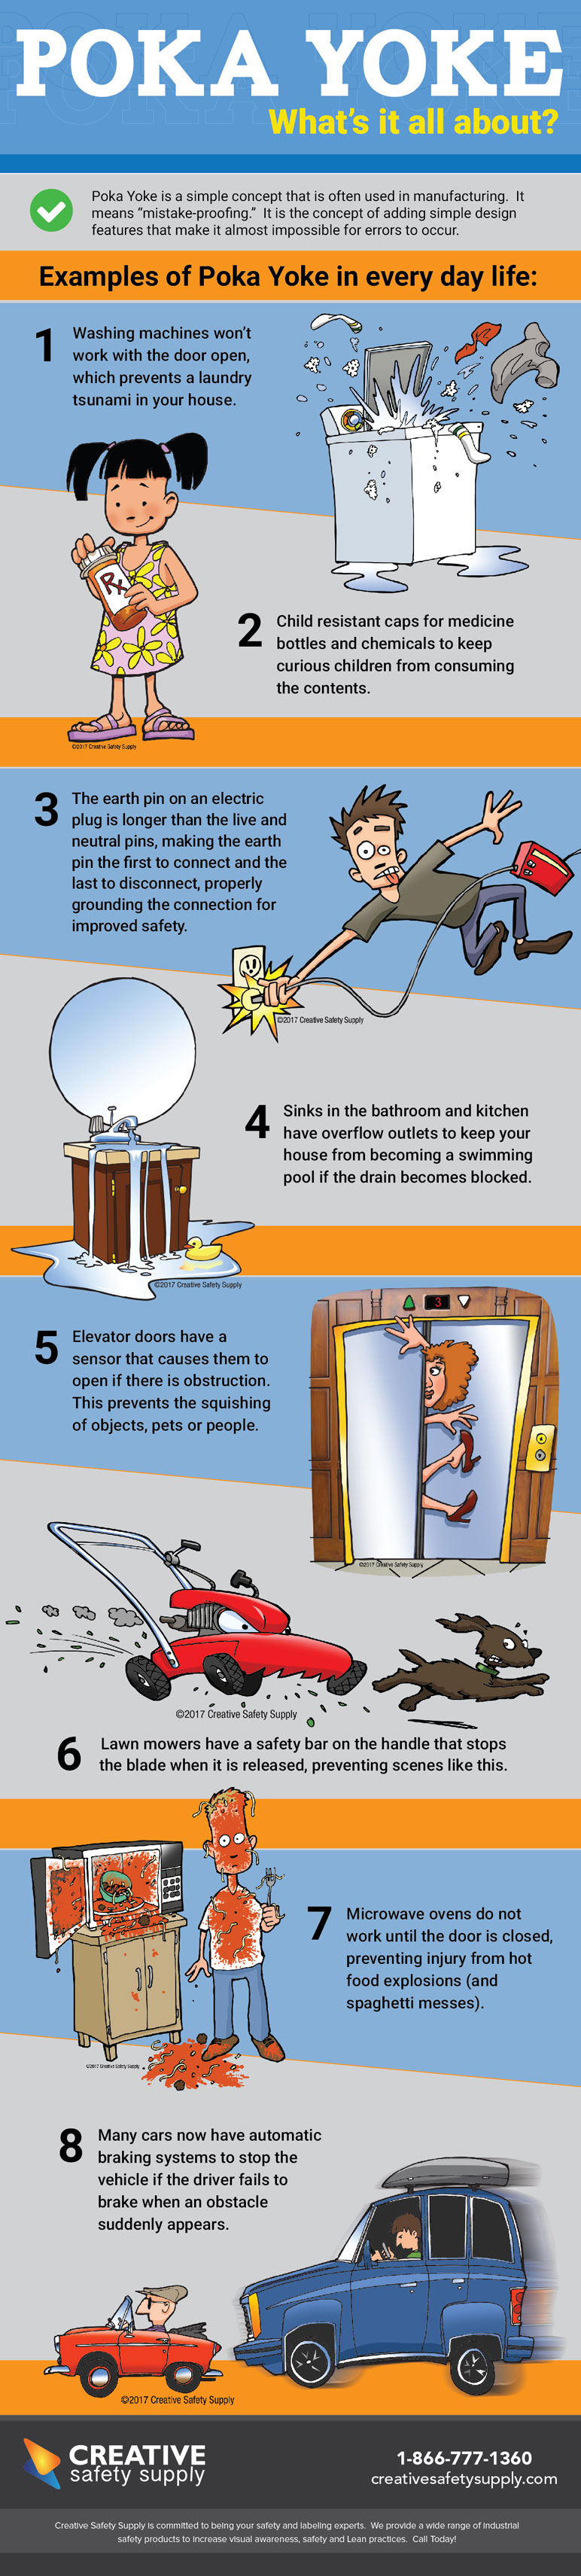 Poka Yoke: What's it all about? #infographic #Lean Manufacturing #Workplace Safety #infographics #Workplace #Facility